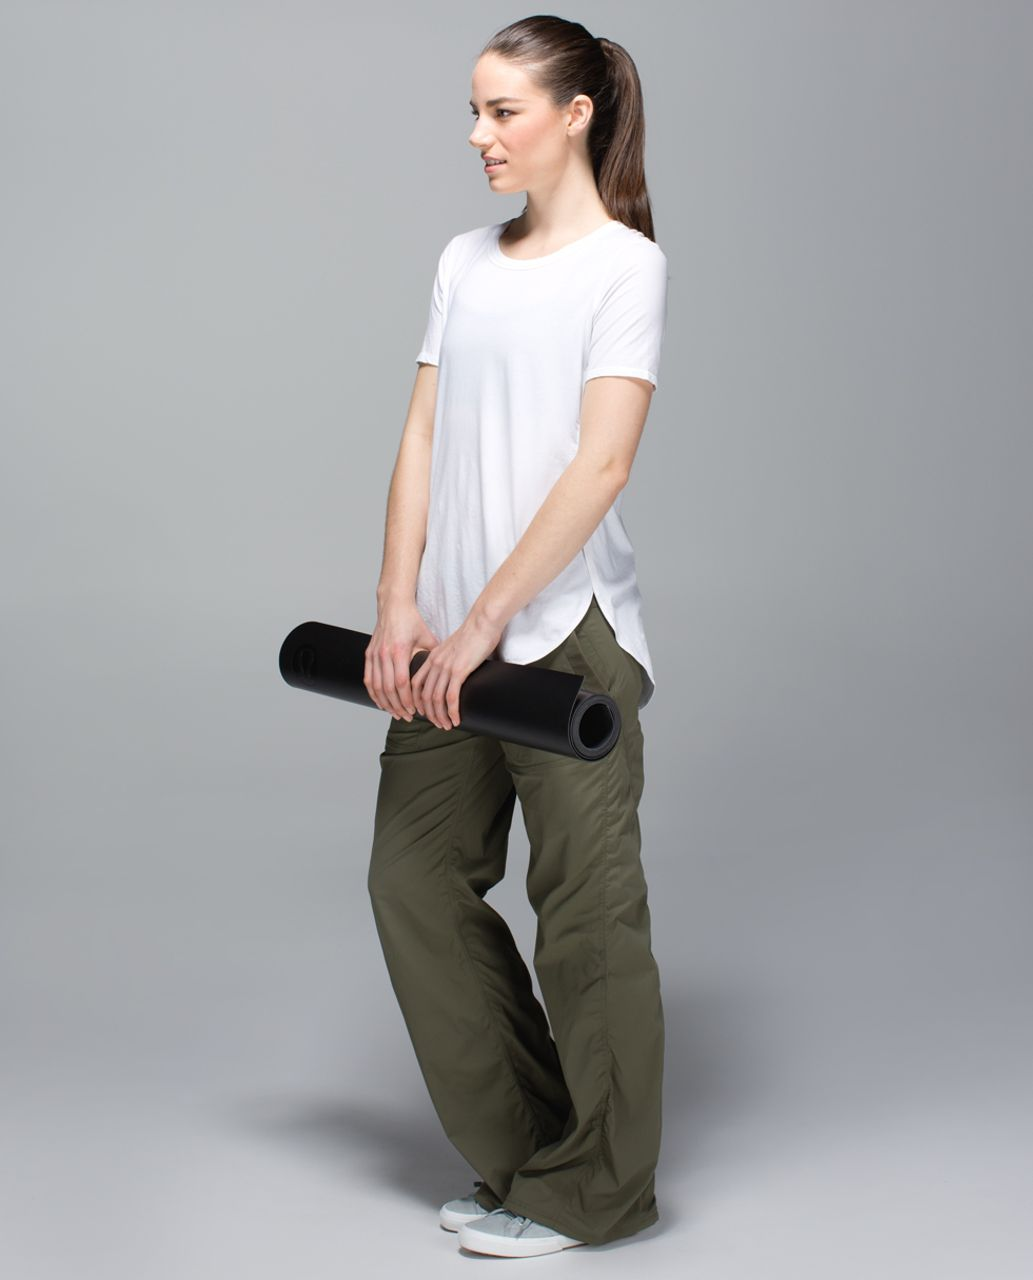 Lululemon Studio Pant II *No Liner (Regular) - Fatigue Green